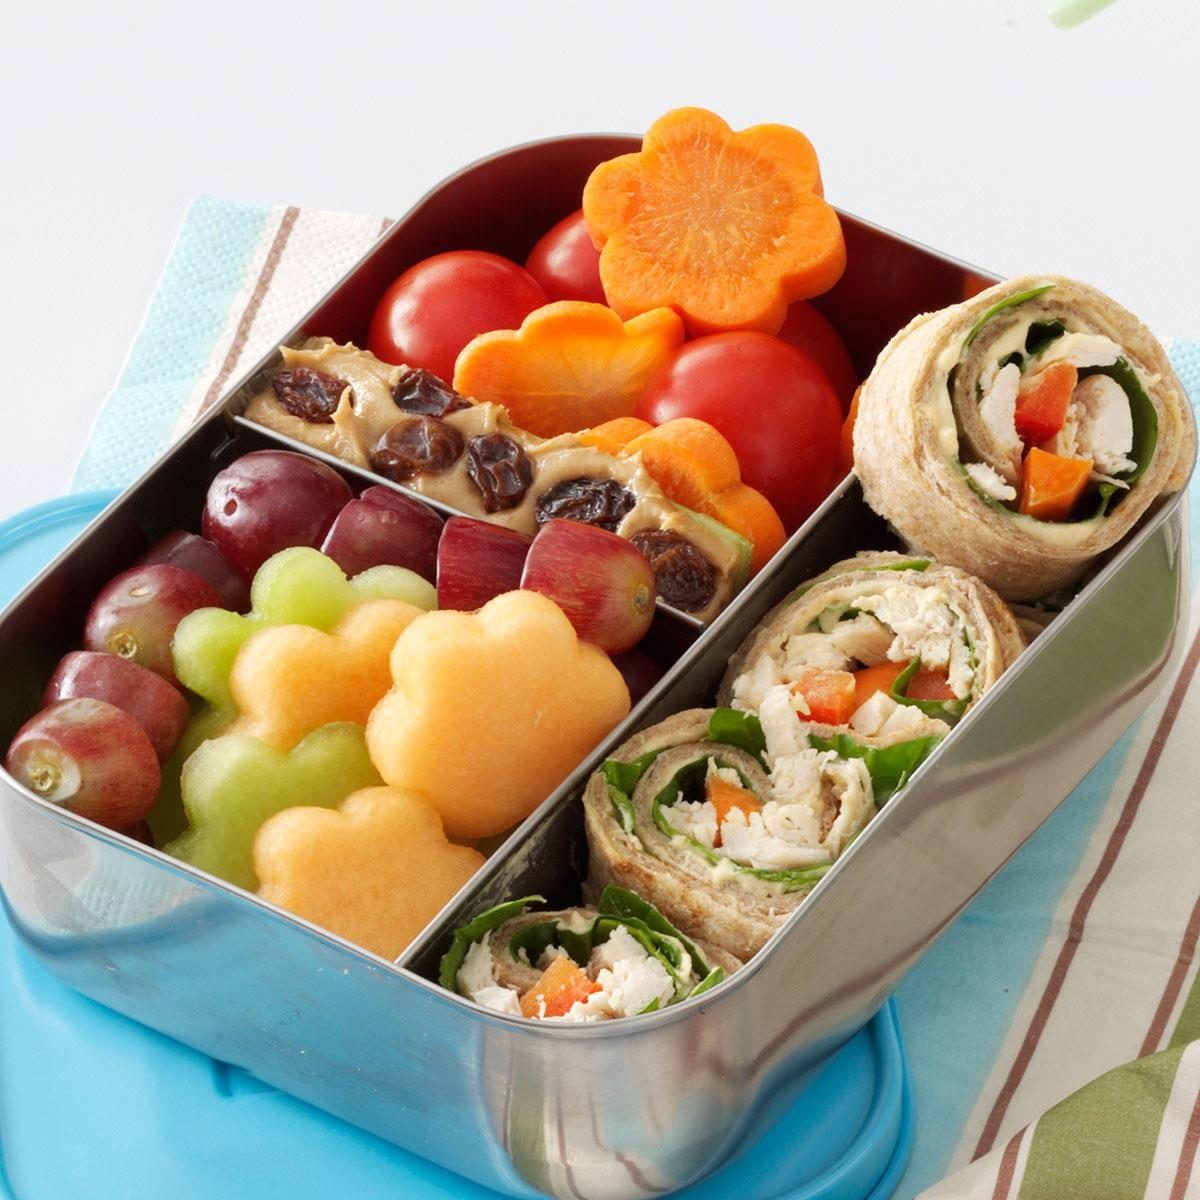 lunch box chicken wrap recipe taste of home. Black Bedroom Furniture Sets. Home Design Ideas